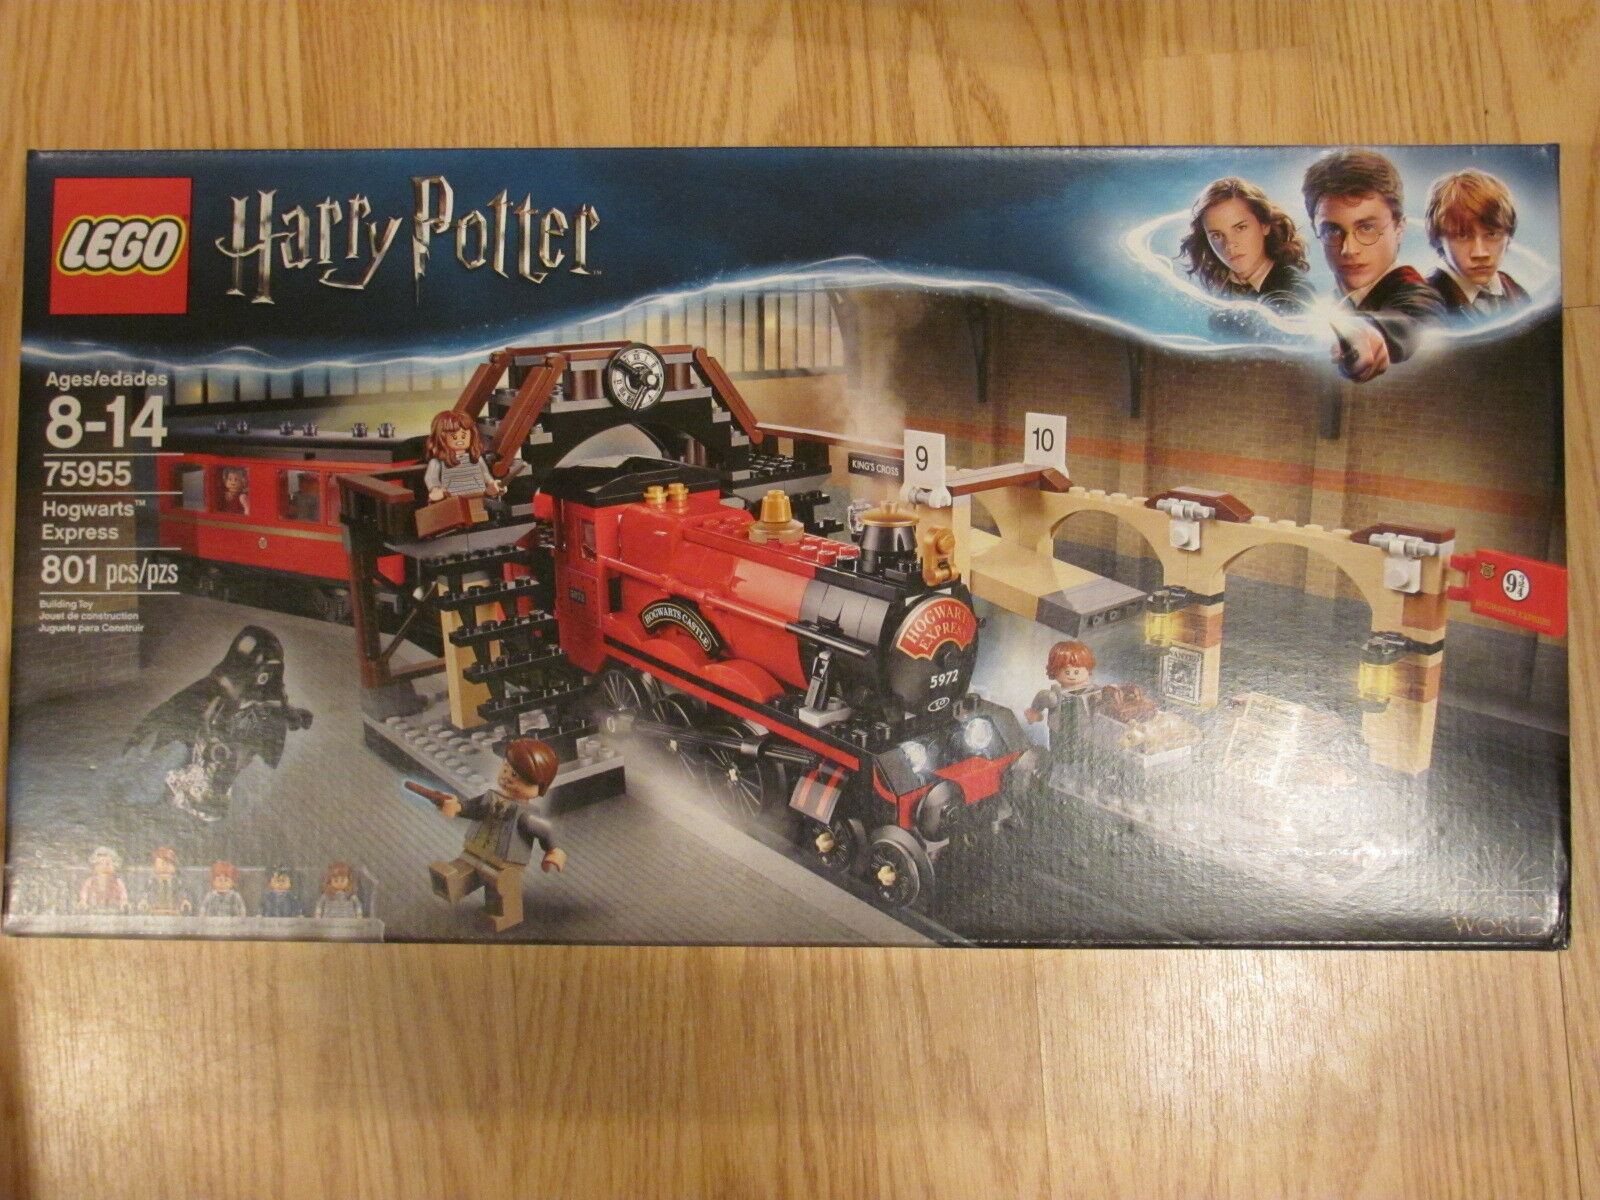 LEGO Harry Potter 75955 Hogwarts Express Train NEW / Sealed 801 Pieces